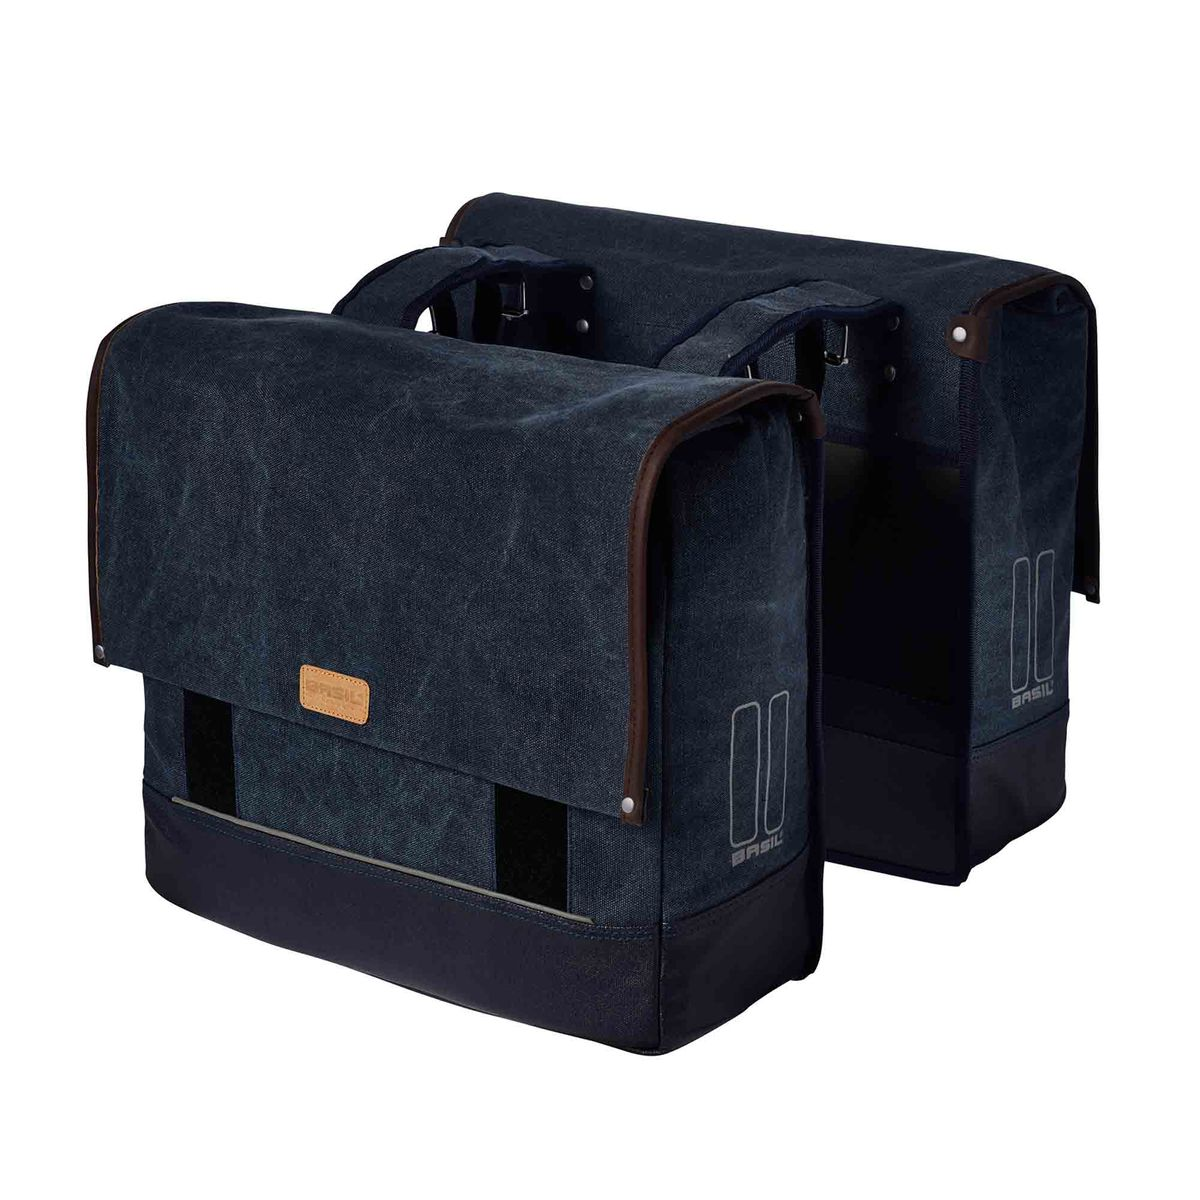 BASIL URBAN FOLD DOUBLE BAG double pannier | City